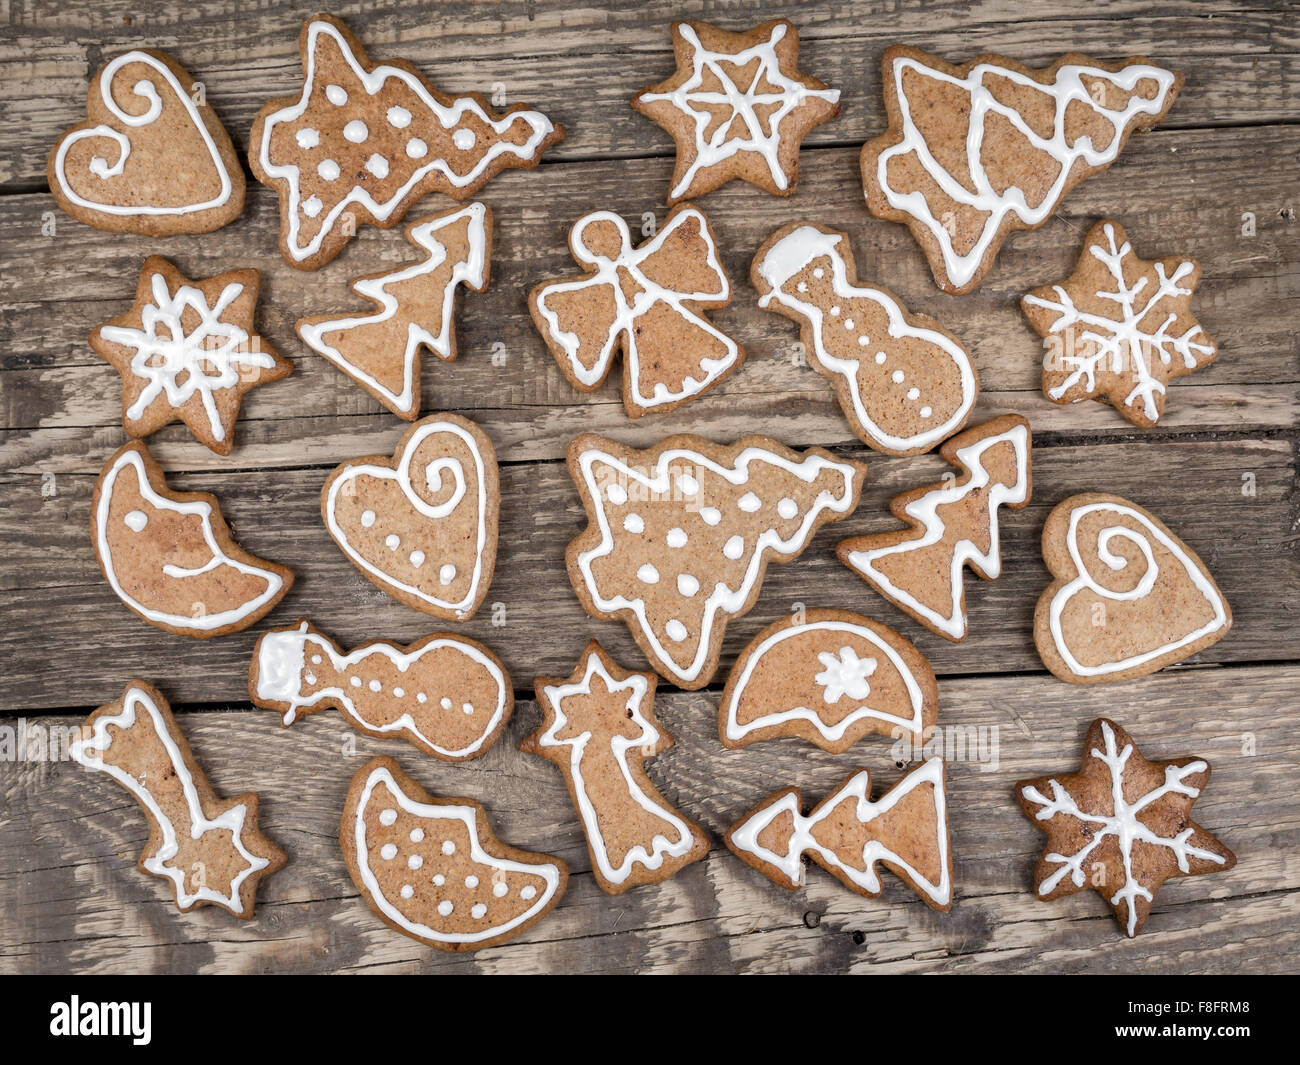 8eee5c5fc208d Different shape Christmas gingerbread cookies with white icing placed on  wooden rustic boards